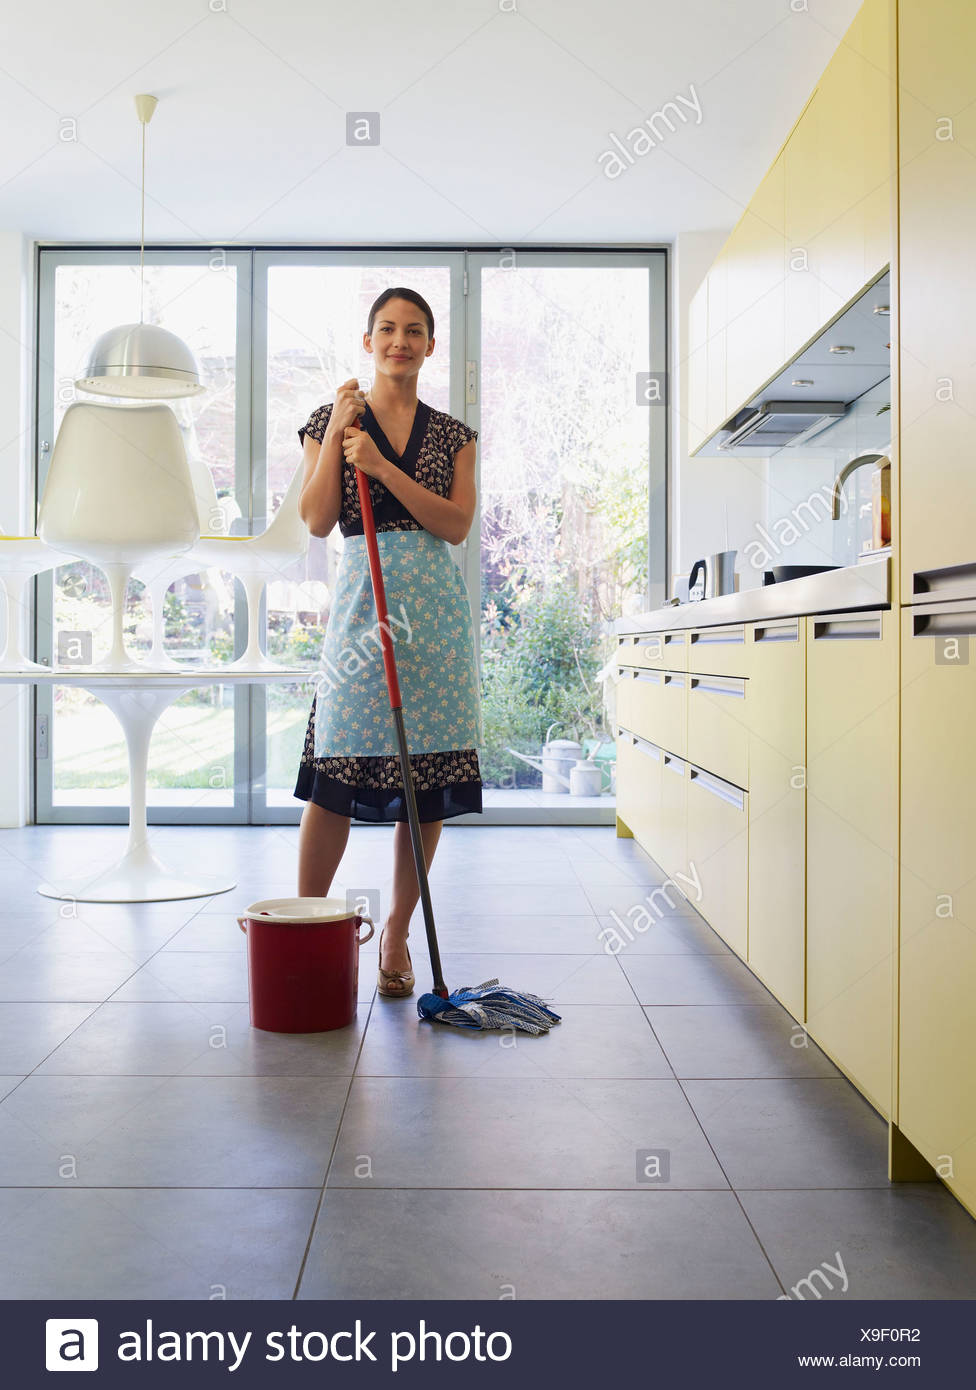 Young woman with mop in kitchen - Stock Image